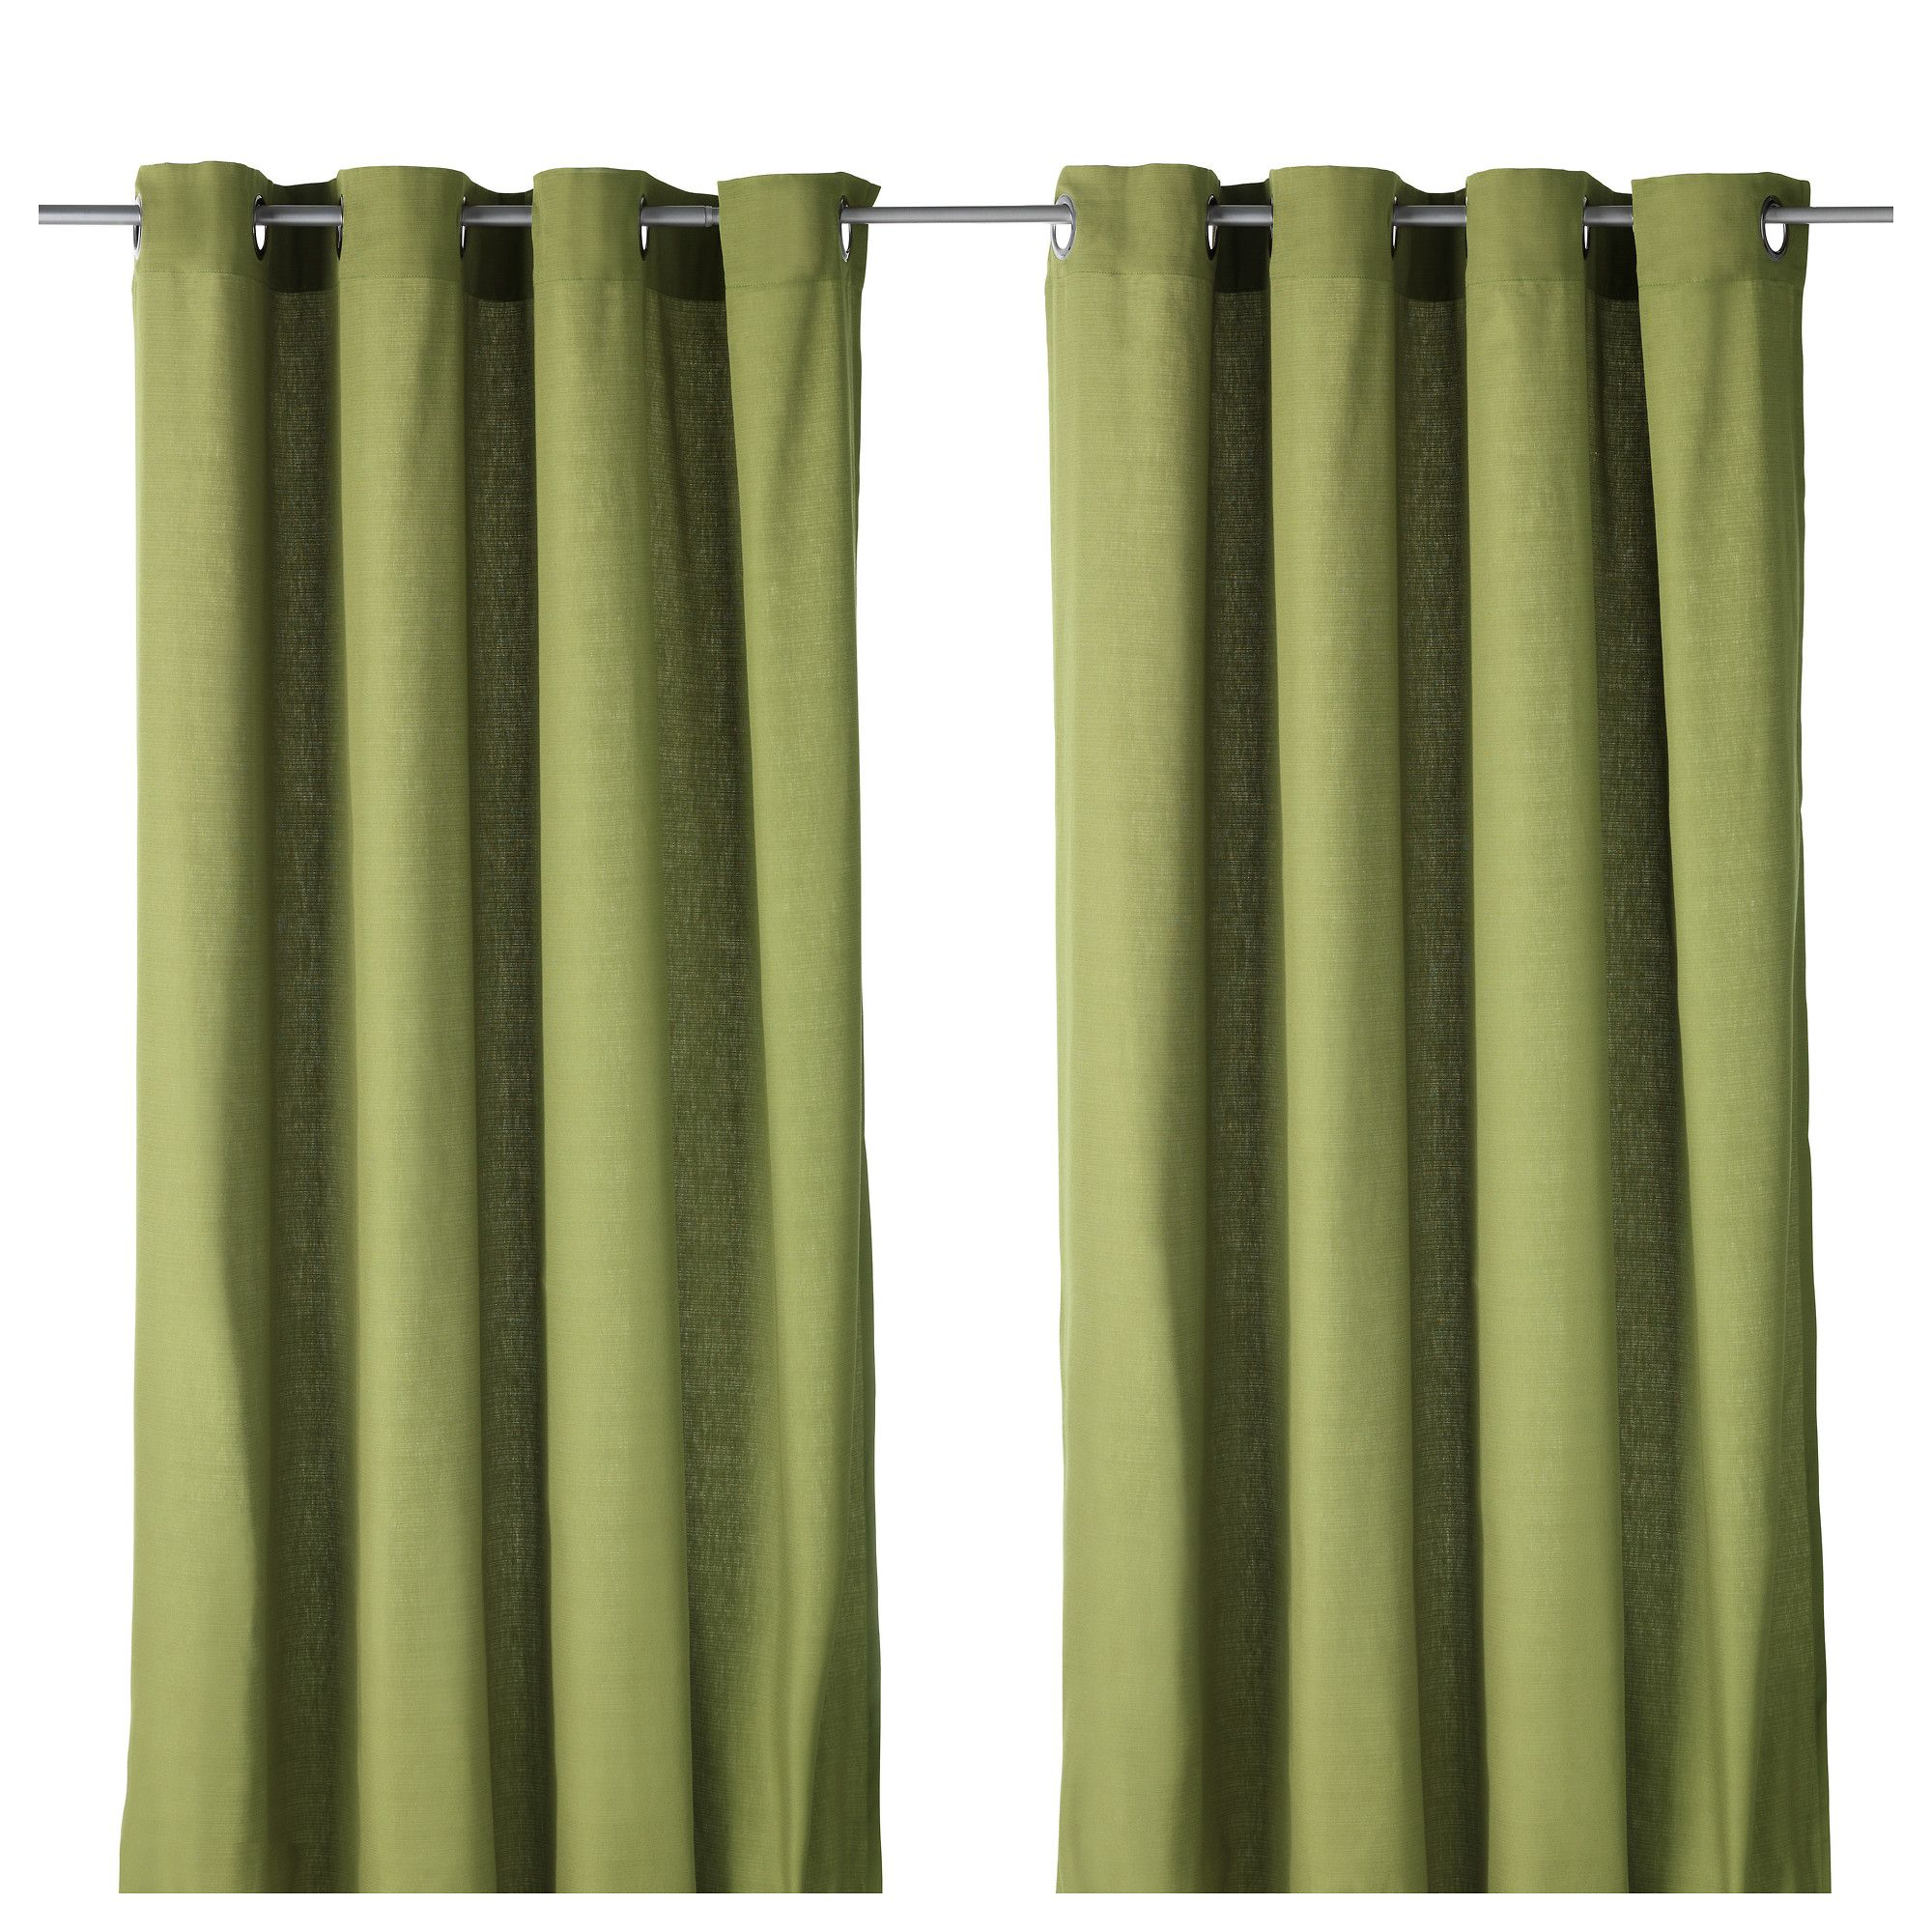 Furniture And Home Furnishings 窗帘 Ikea Curtains Ikea Curtains With Blinds